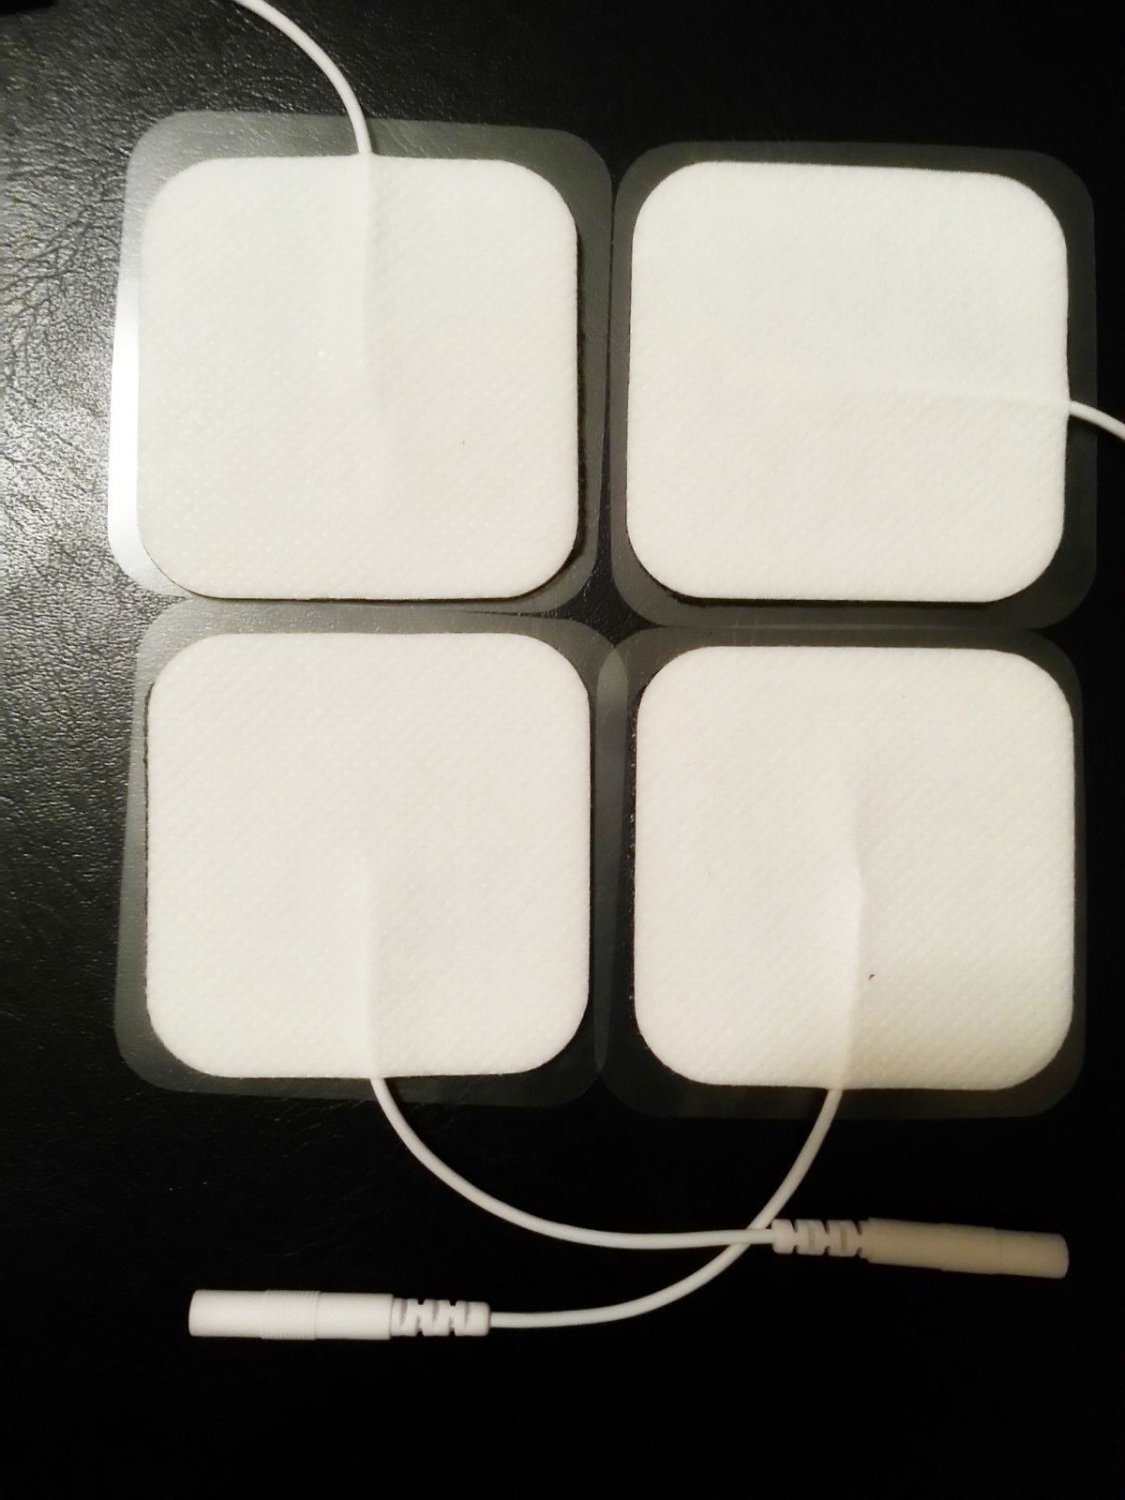 16 PC SQUARE REPLACEMENT ELECTRODE MASSAGE PADS TENS 2500, 3000, 7000 COMPATIBLE